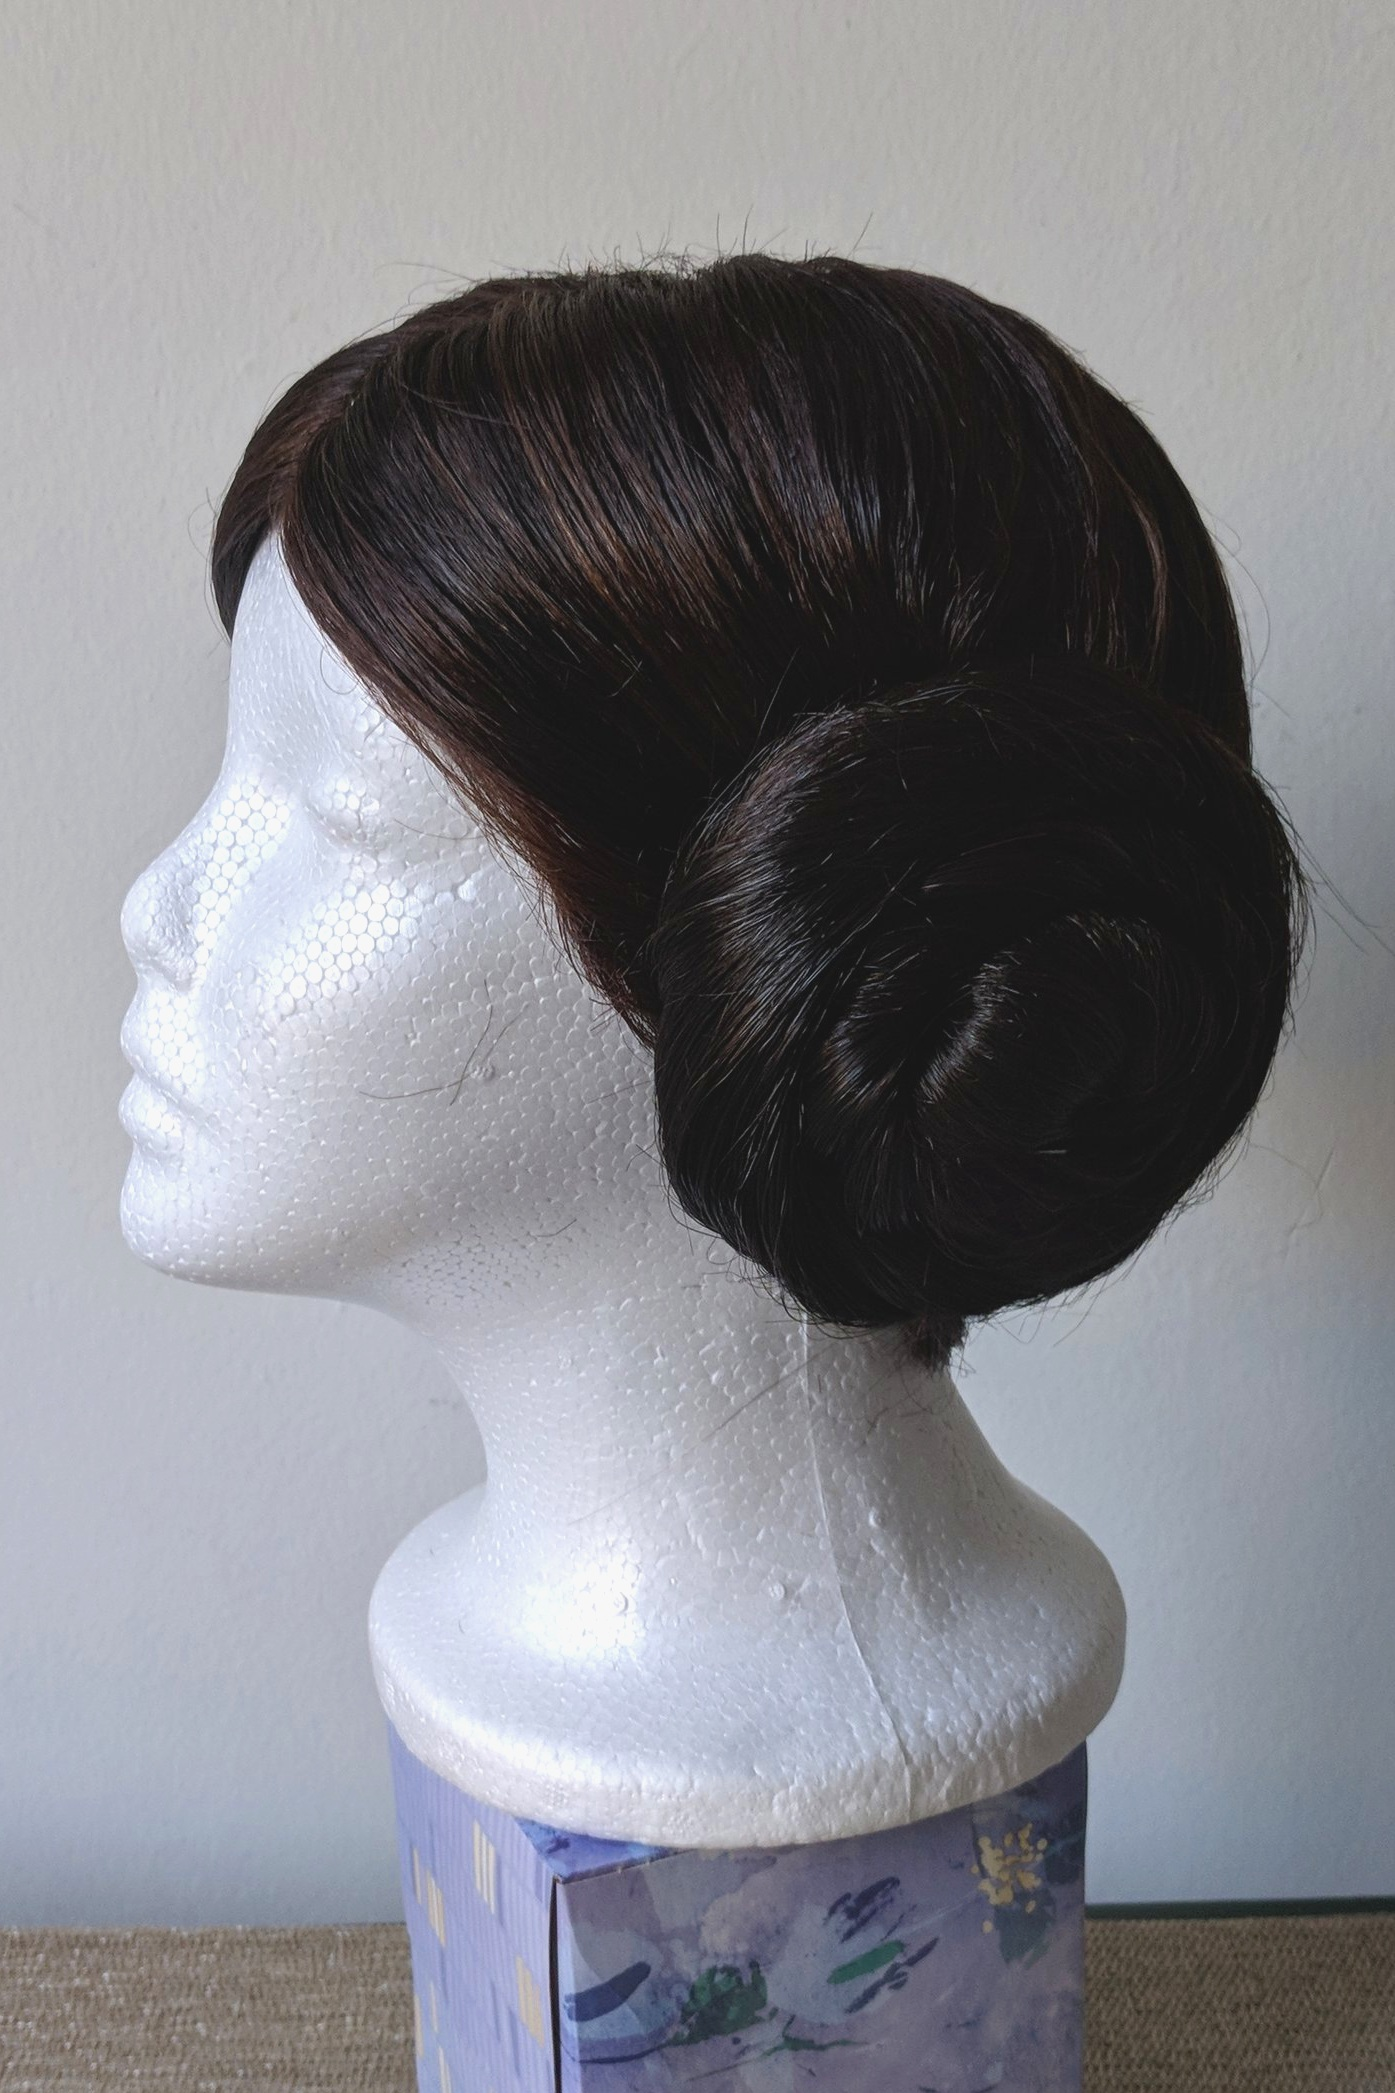 Princess Leia Wig, 2018  Commissioned by: Juli Miller  Synthetic wig styled into 2 sections with extensions sewn in to create buns